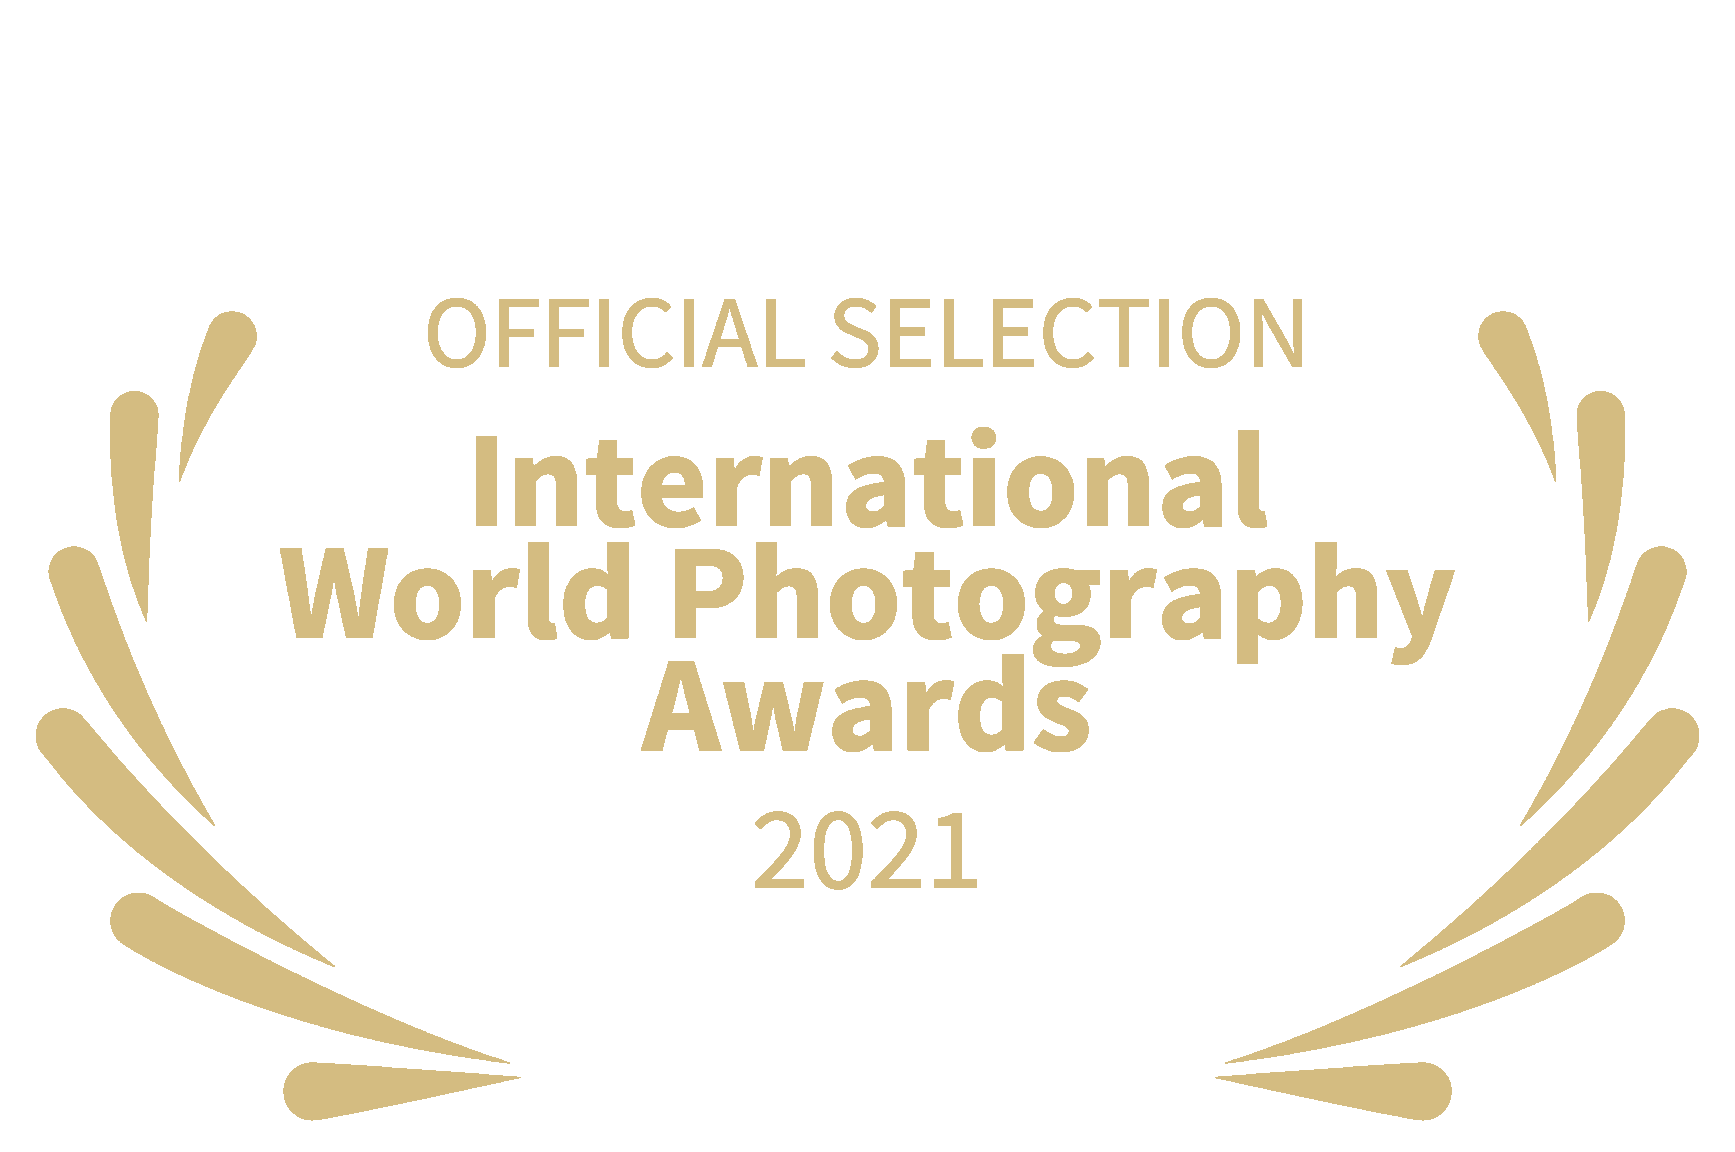 OFFICIAL SELECTION - International World Photography Awards - 2021